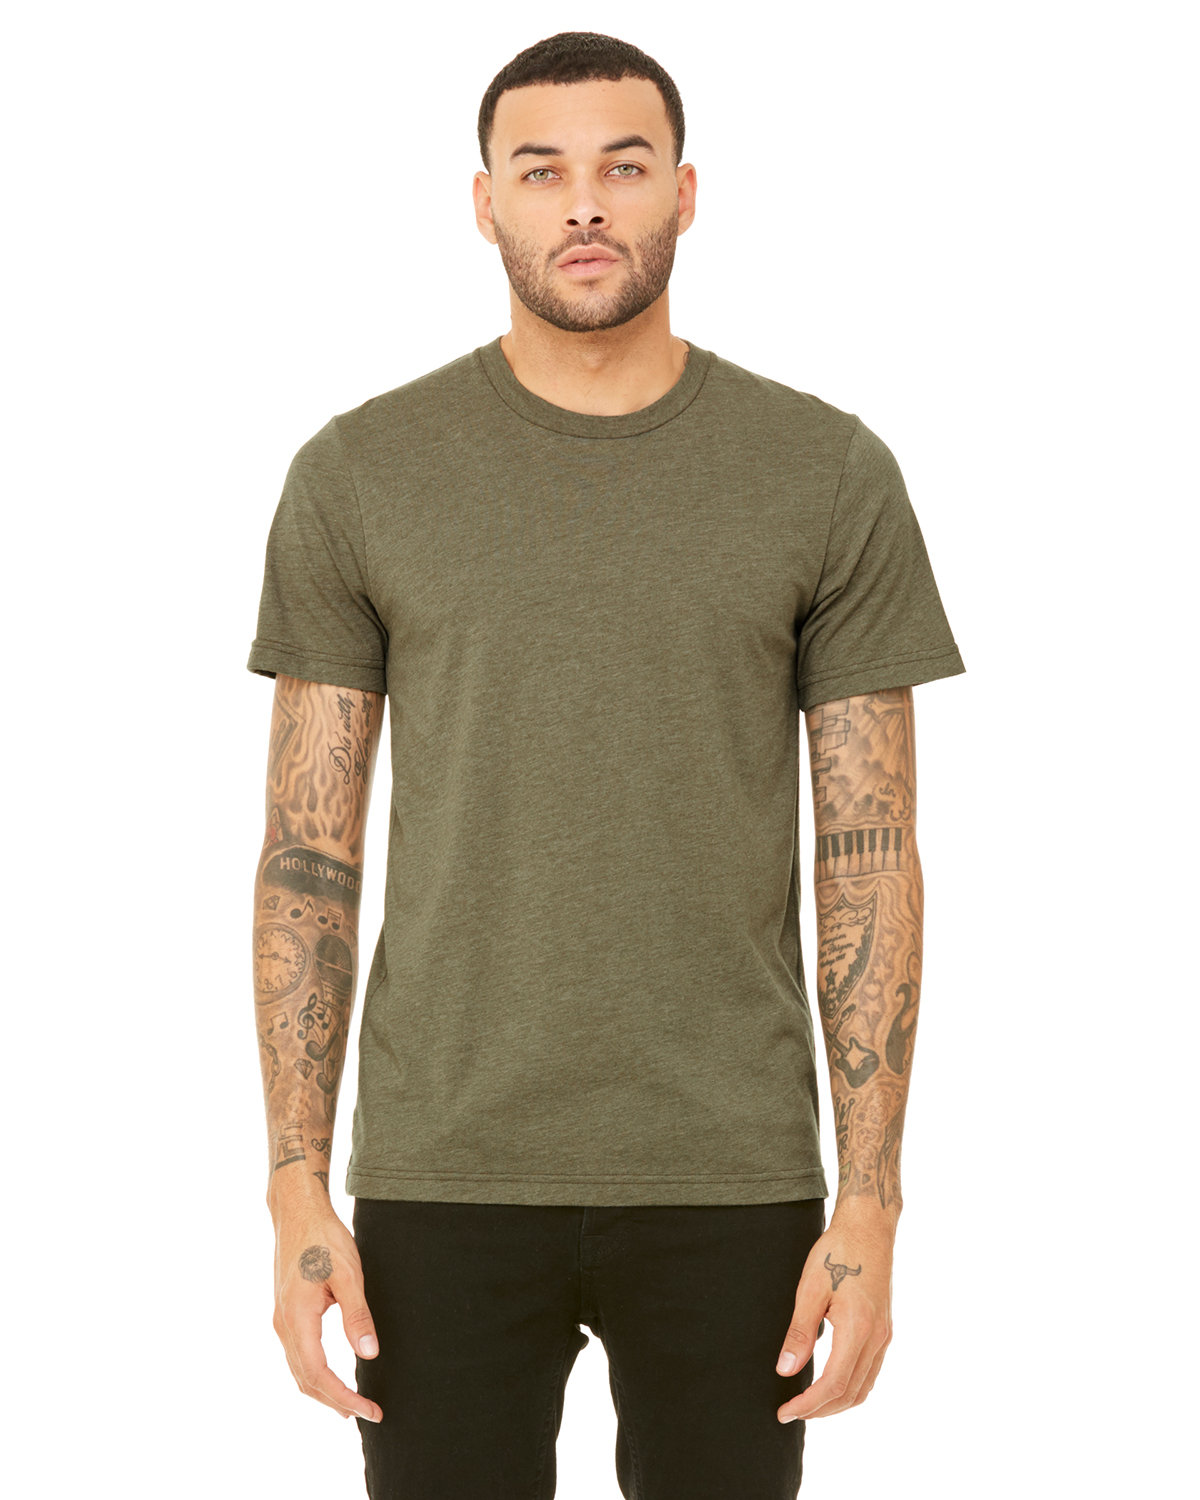 Bella + Canvas Unisex Heather CVC T-Shirt HEATHER OLIVE